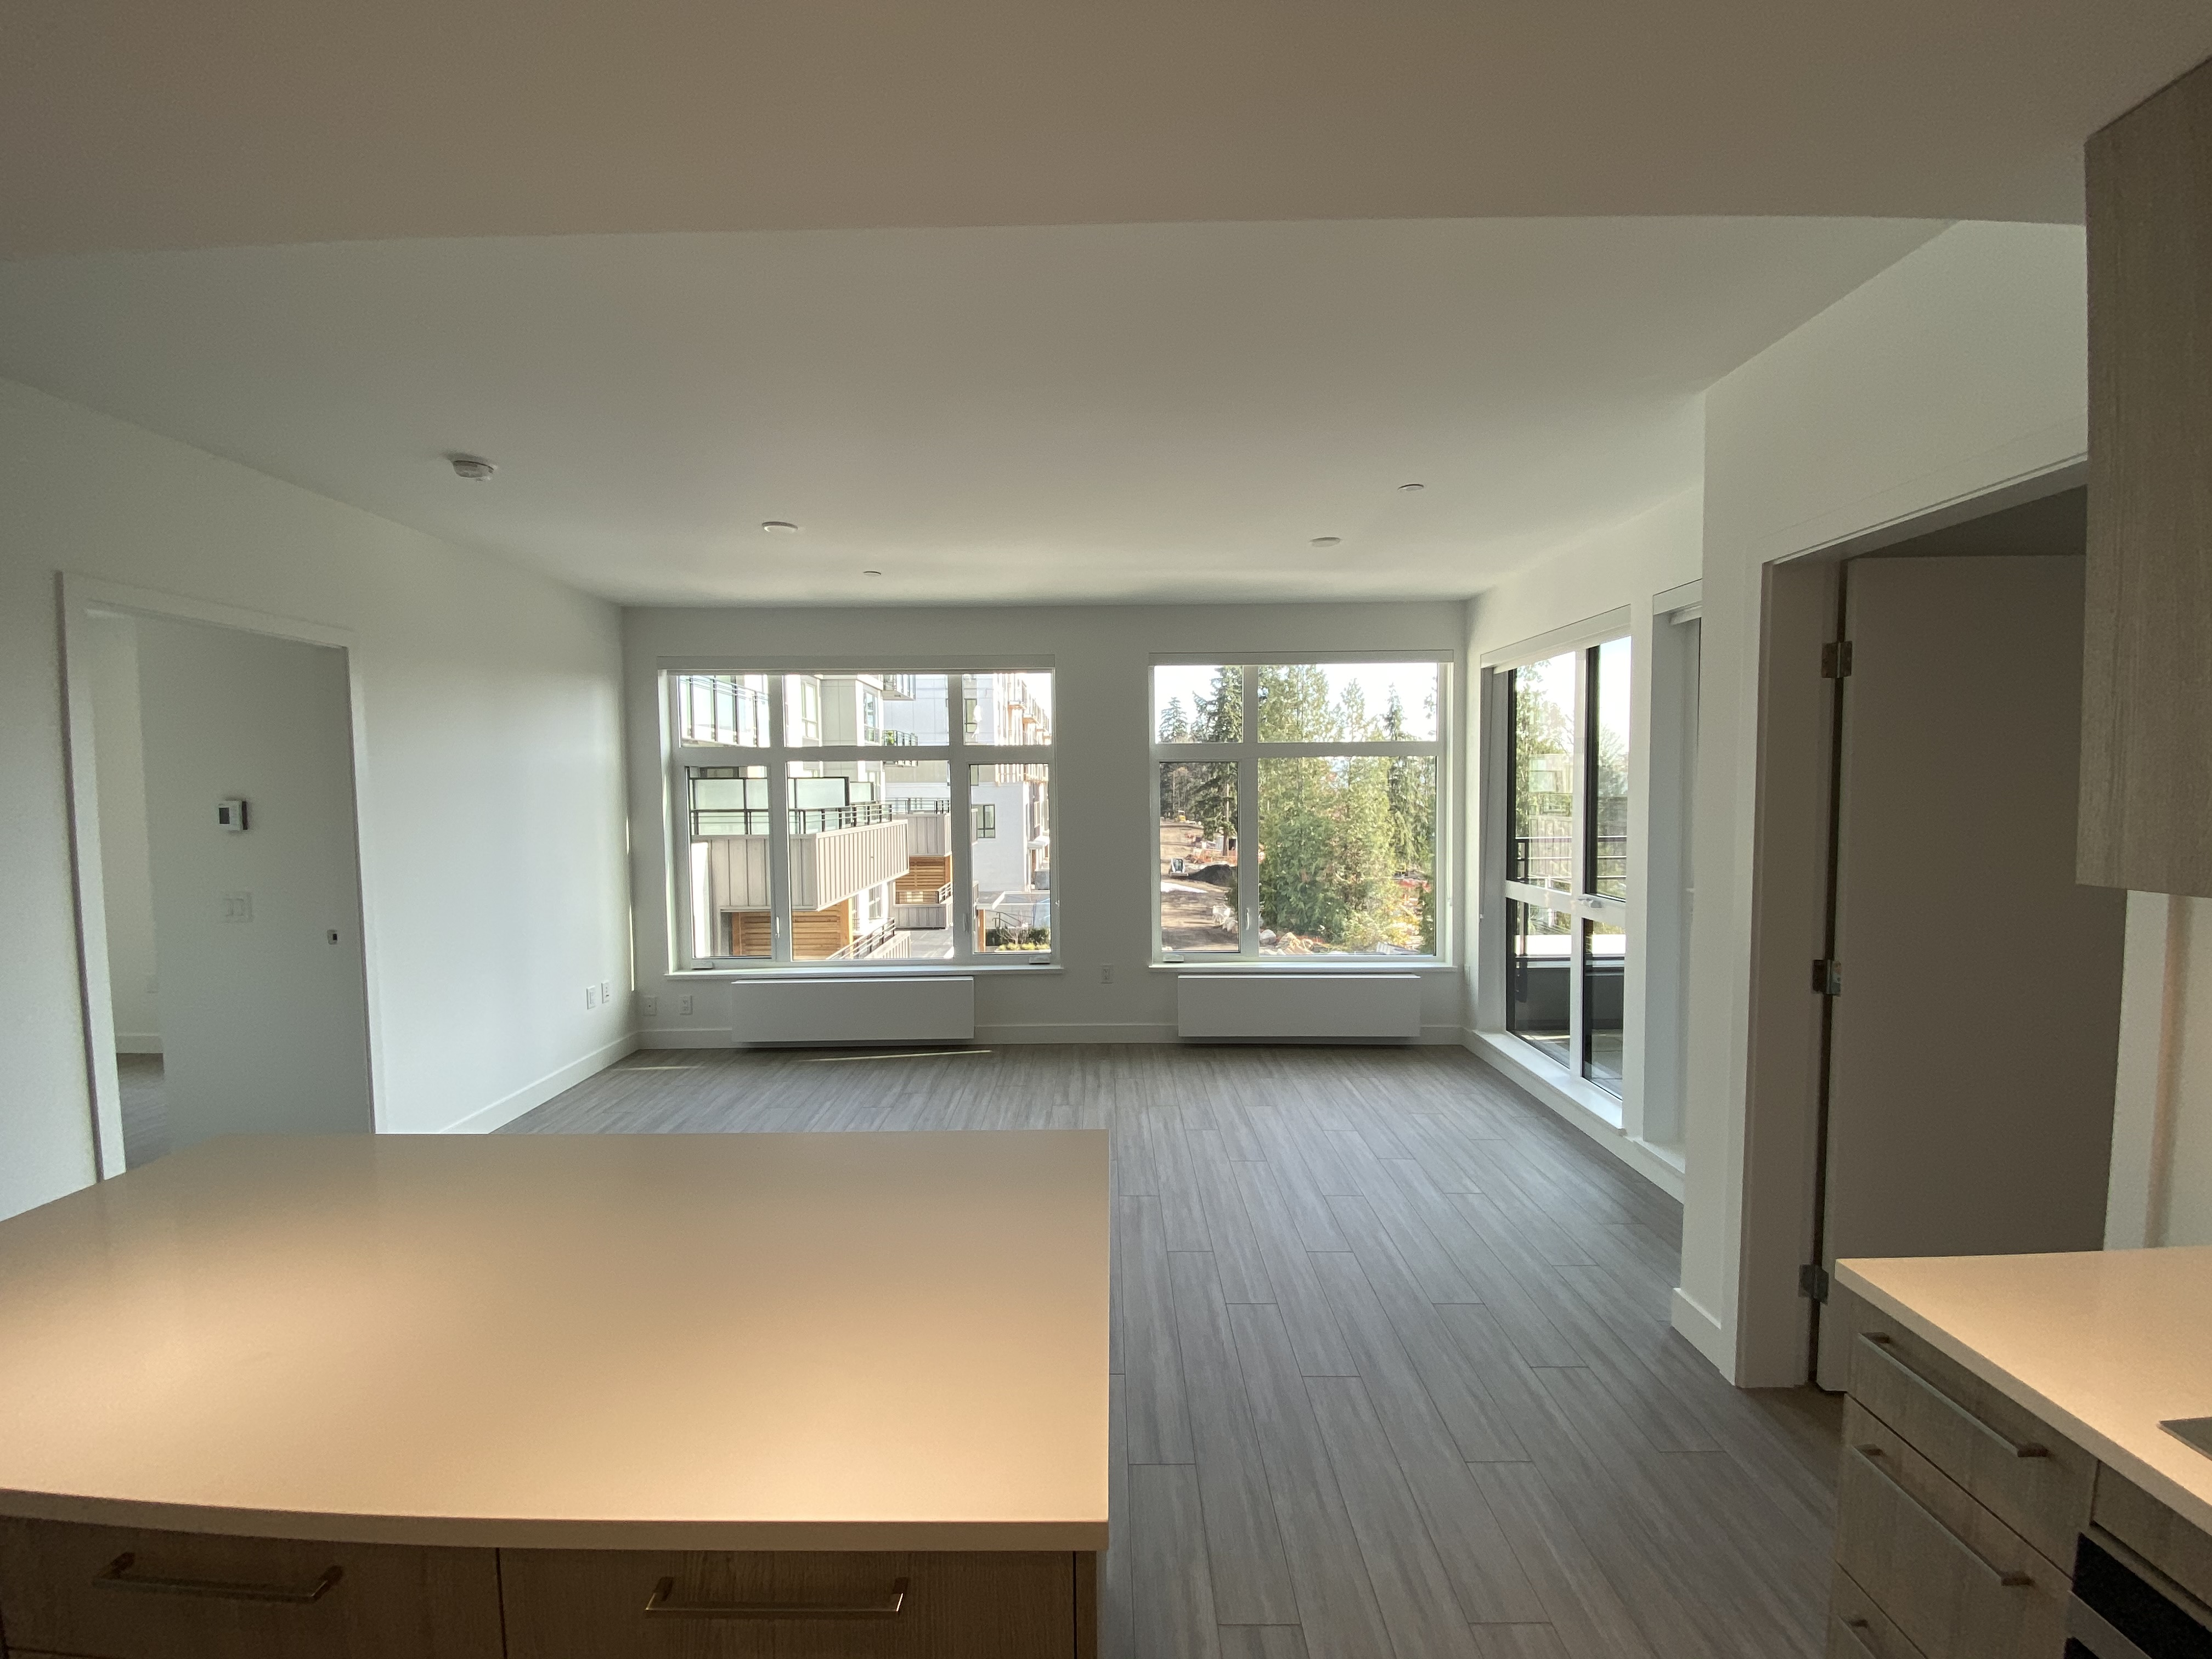 The Perfect Floorplan, 1 Bd + Den Large Enough For Bed!